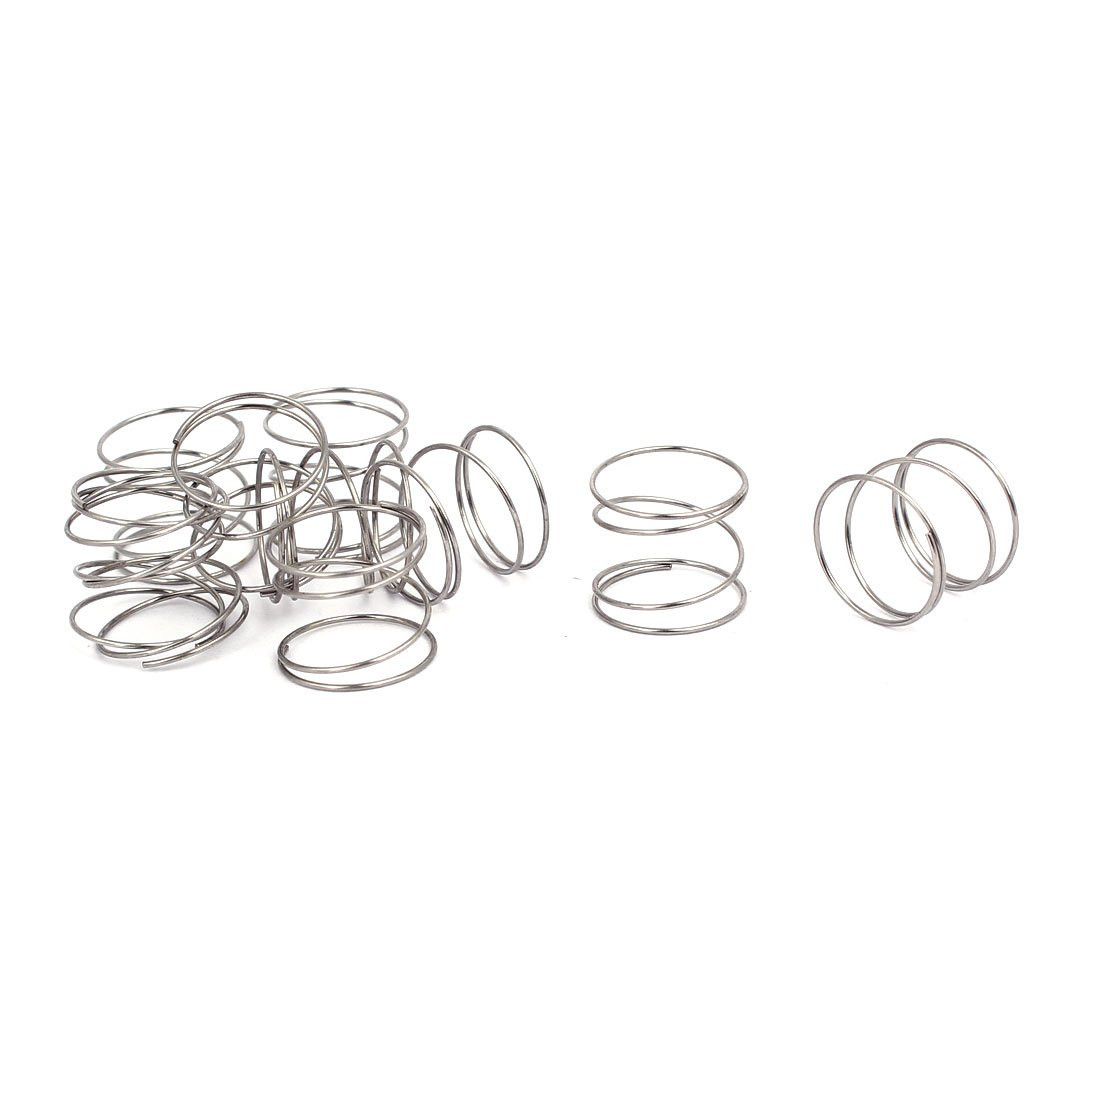 uxcell Compression Spring New color 304 Stainless OD 0.5mm 12mm lowest price Steel Wire